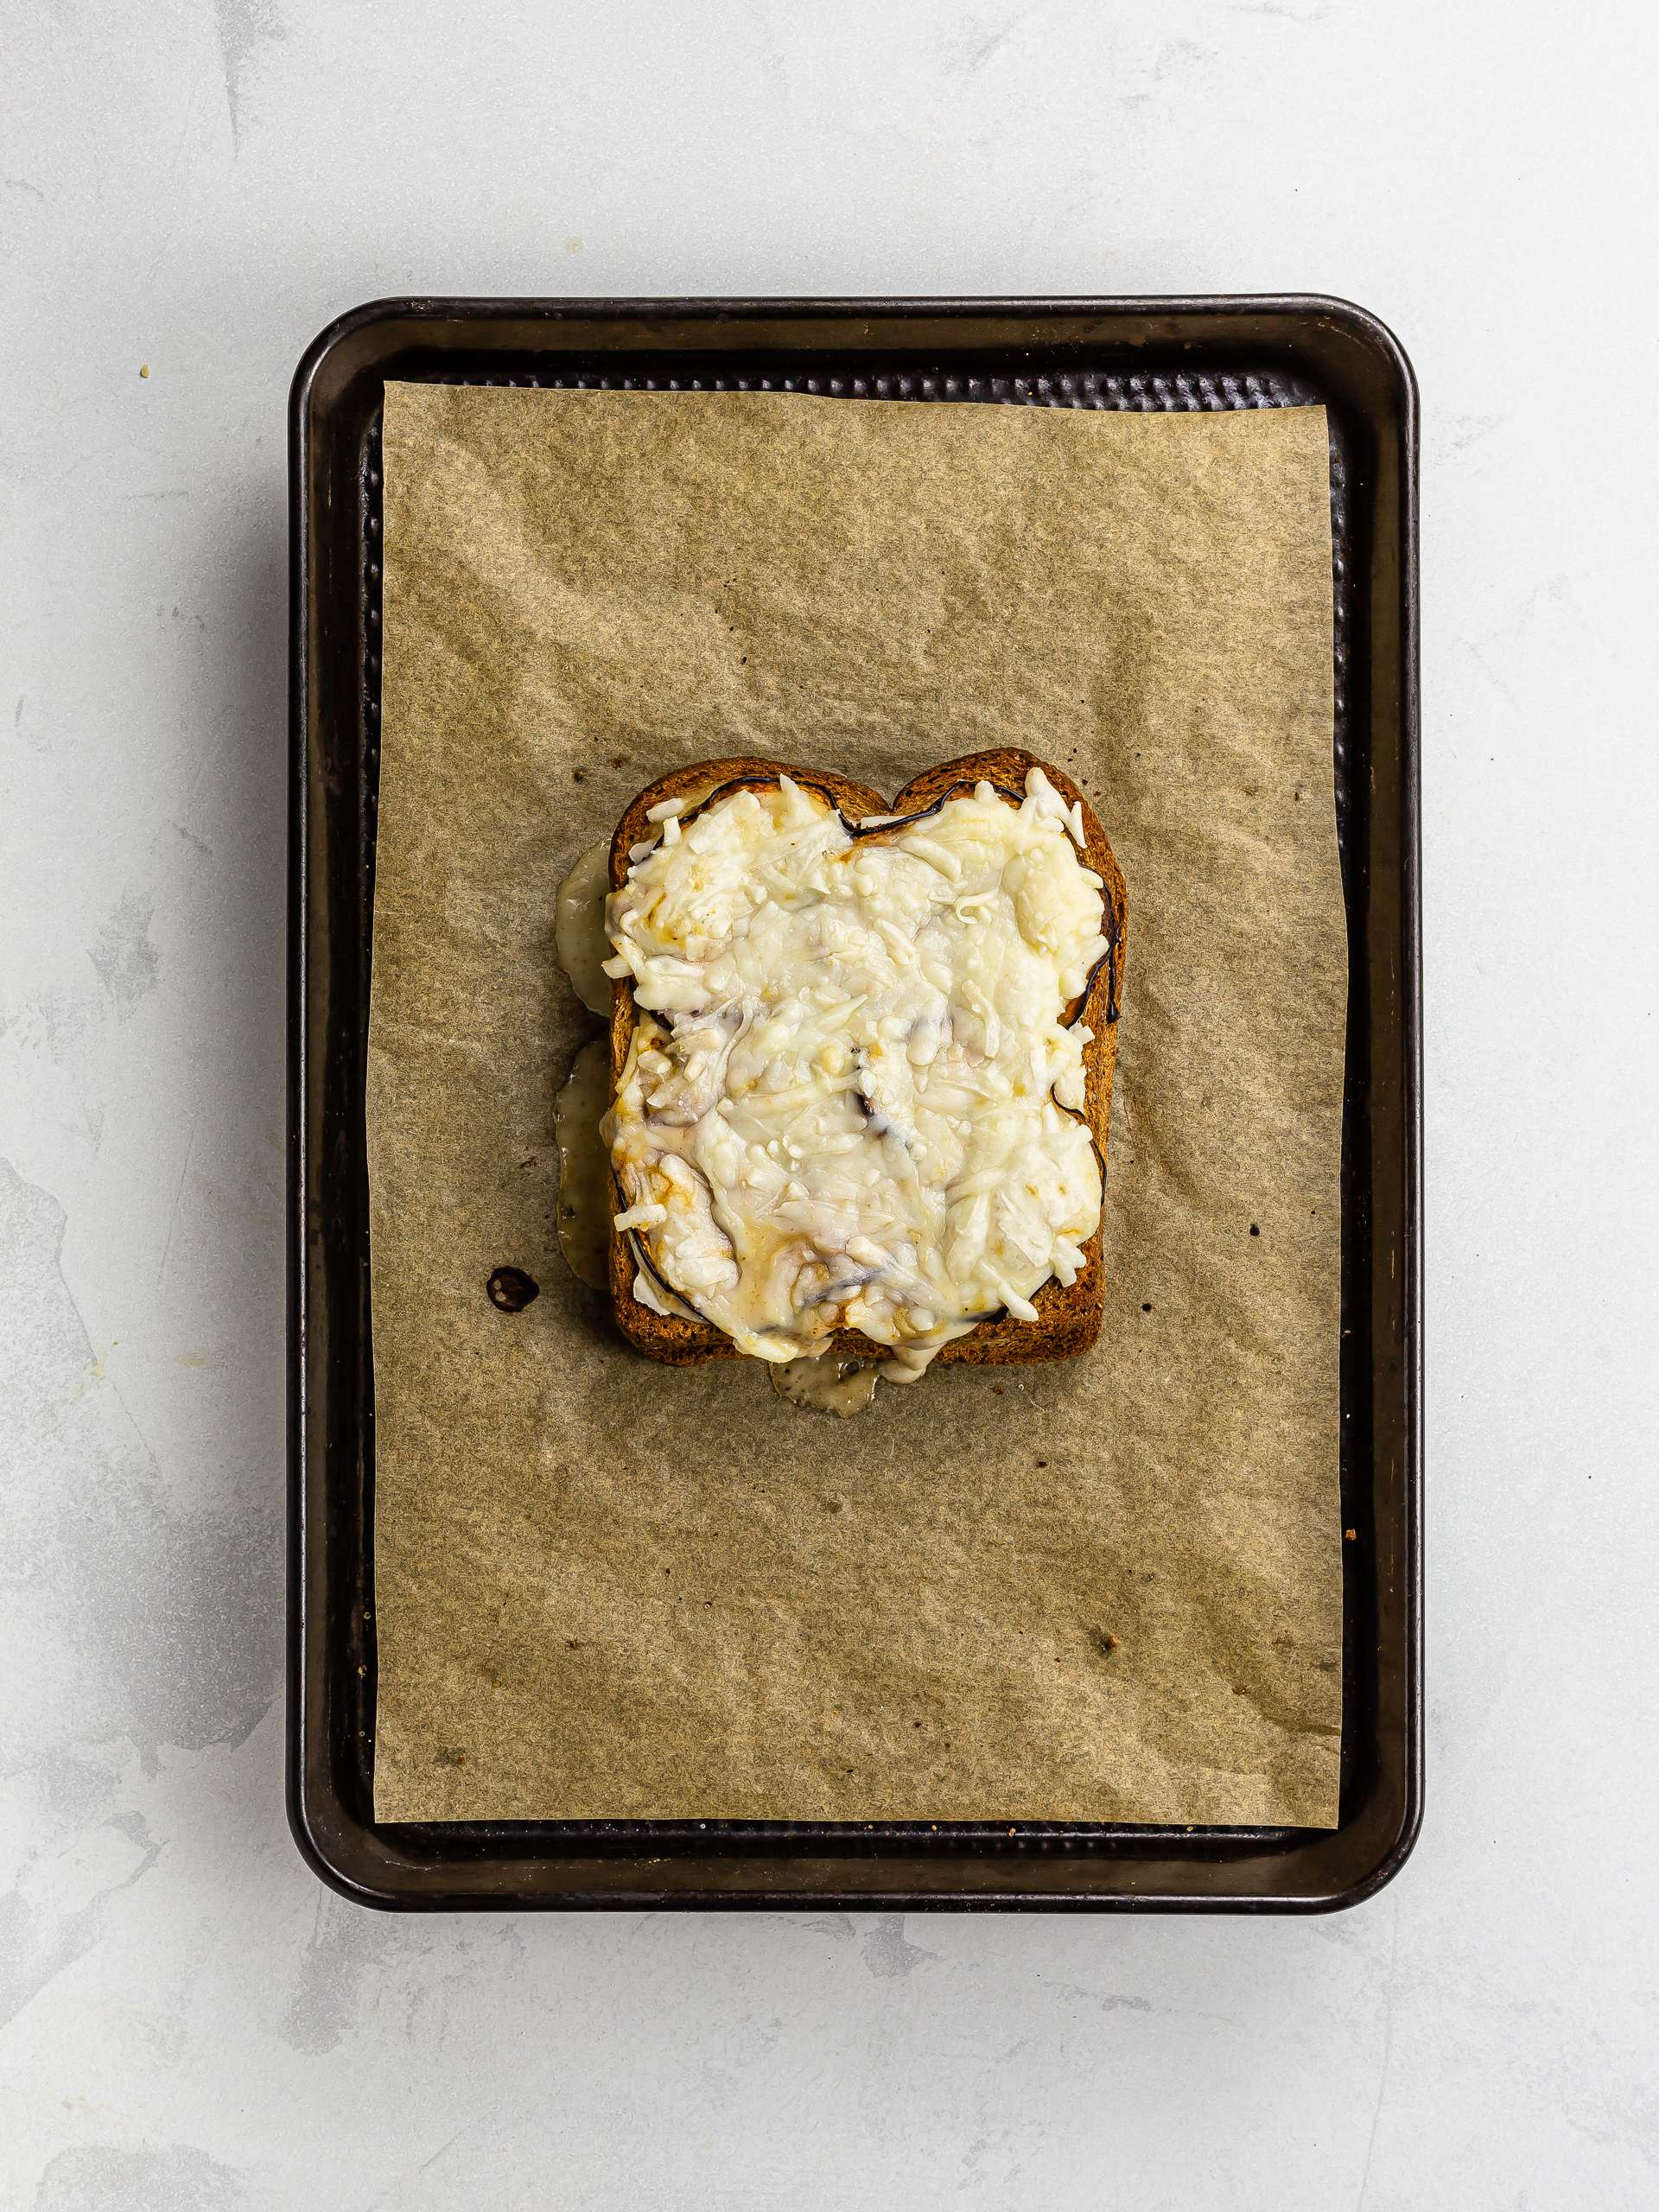 oven-baked vegan croque monsieur on a tray